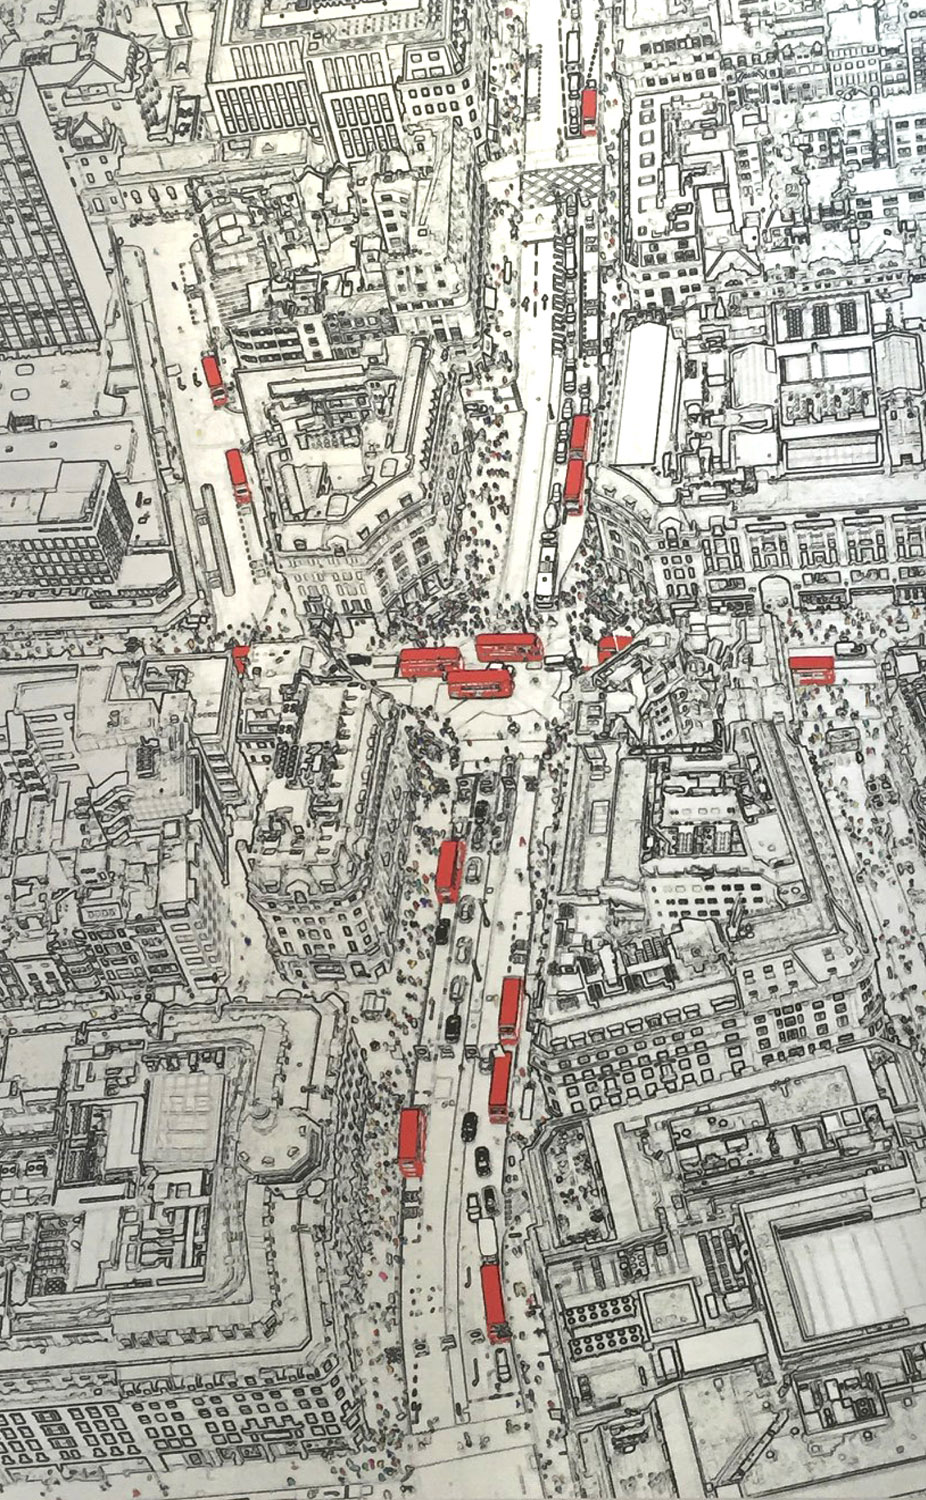 michael_wallner_oxford_circus_from_above_91_x_61cmed_of_25_ps950_brushed_aluminium_artiqj.pg_.jpg